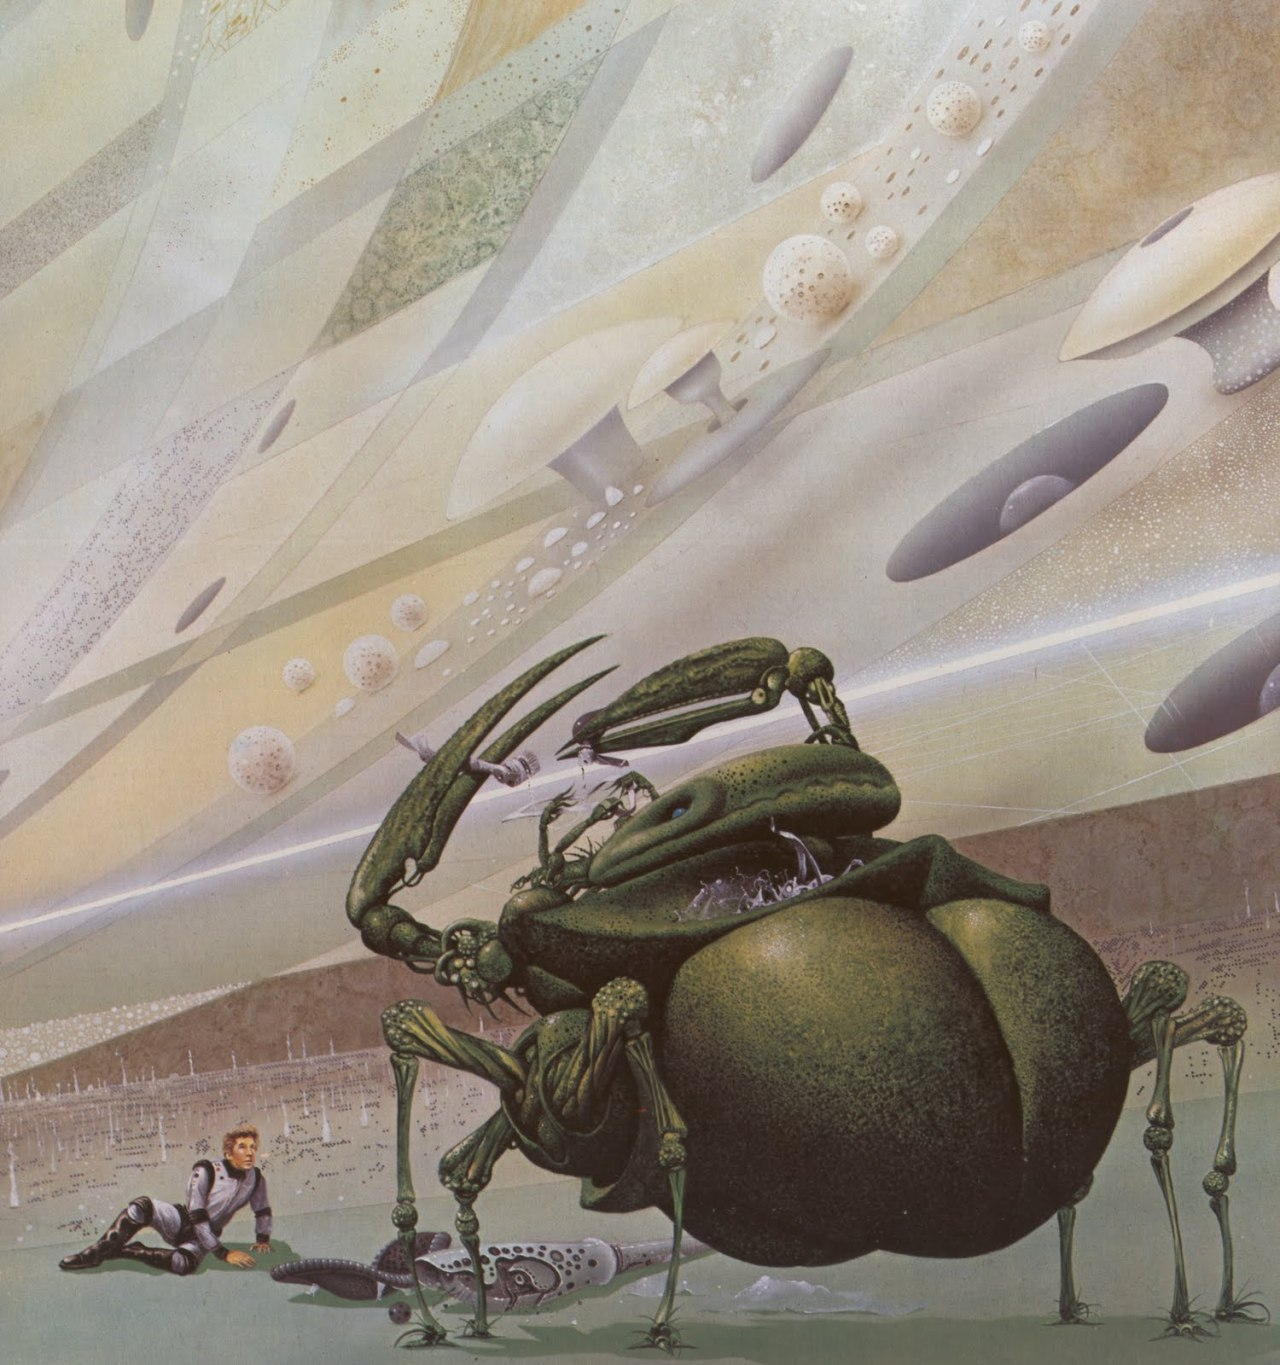 First Contact by Jim Burns - Illustration for Rendezvous with Rama by Arthur C. Clarke